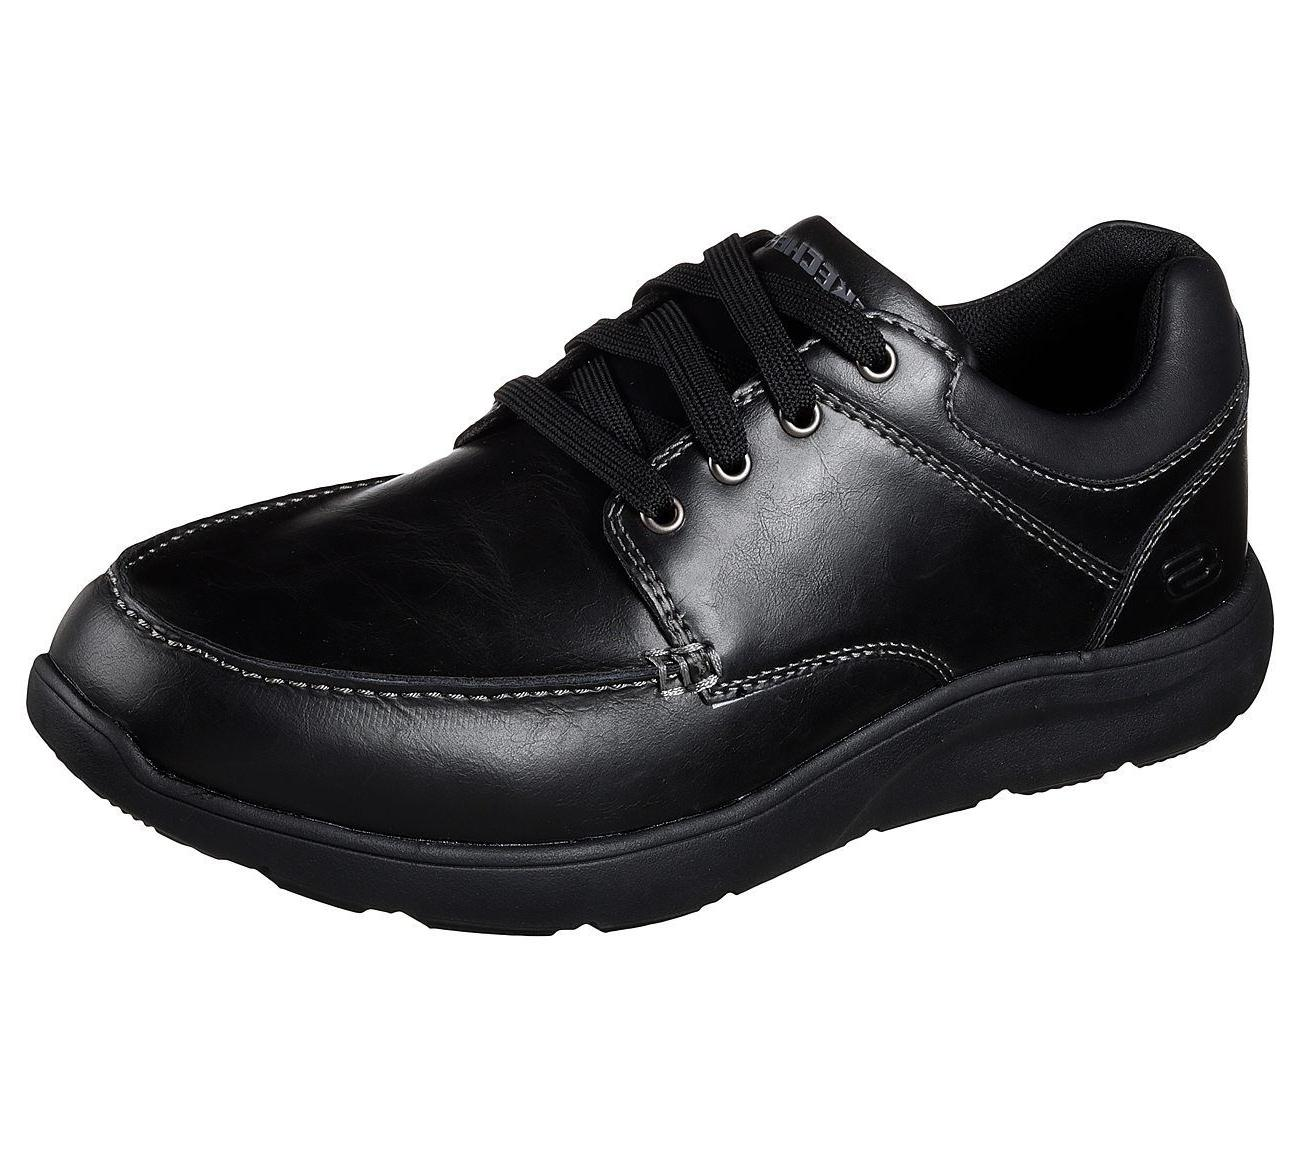 65325 black shoes men memory foam sport